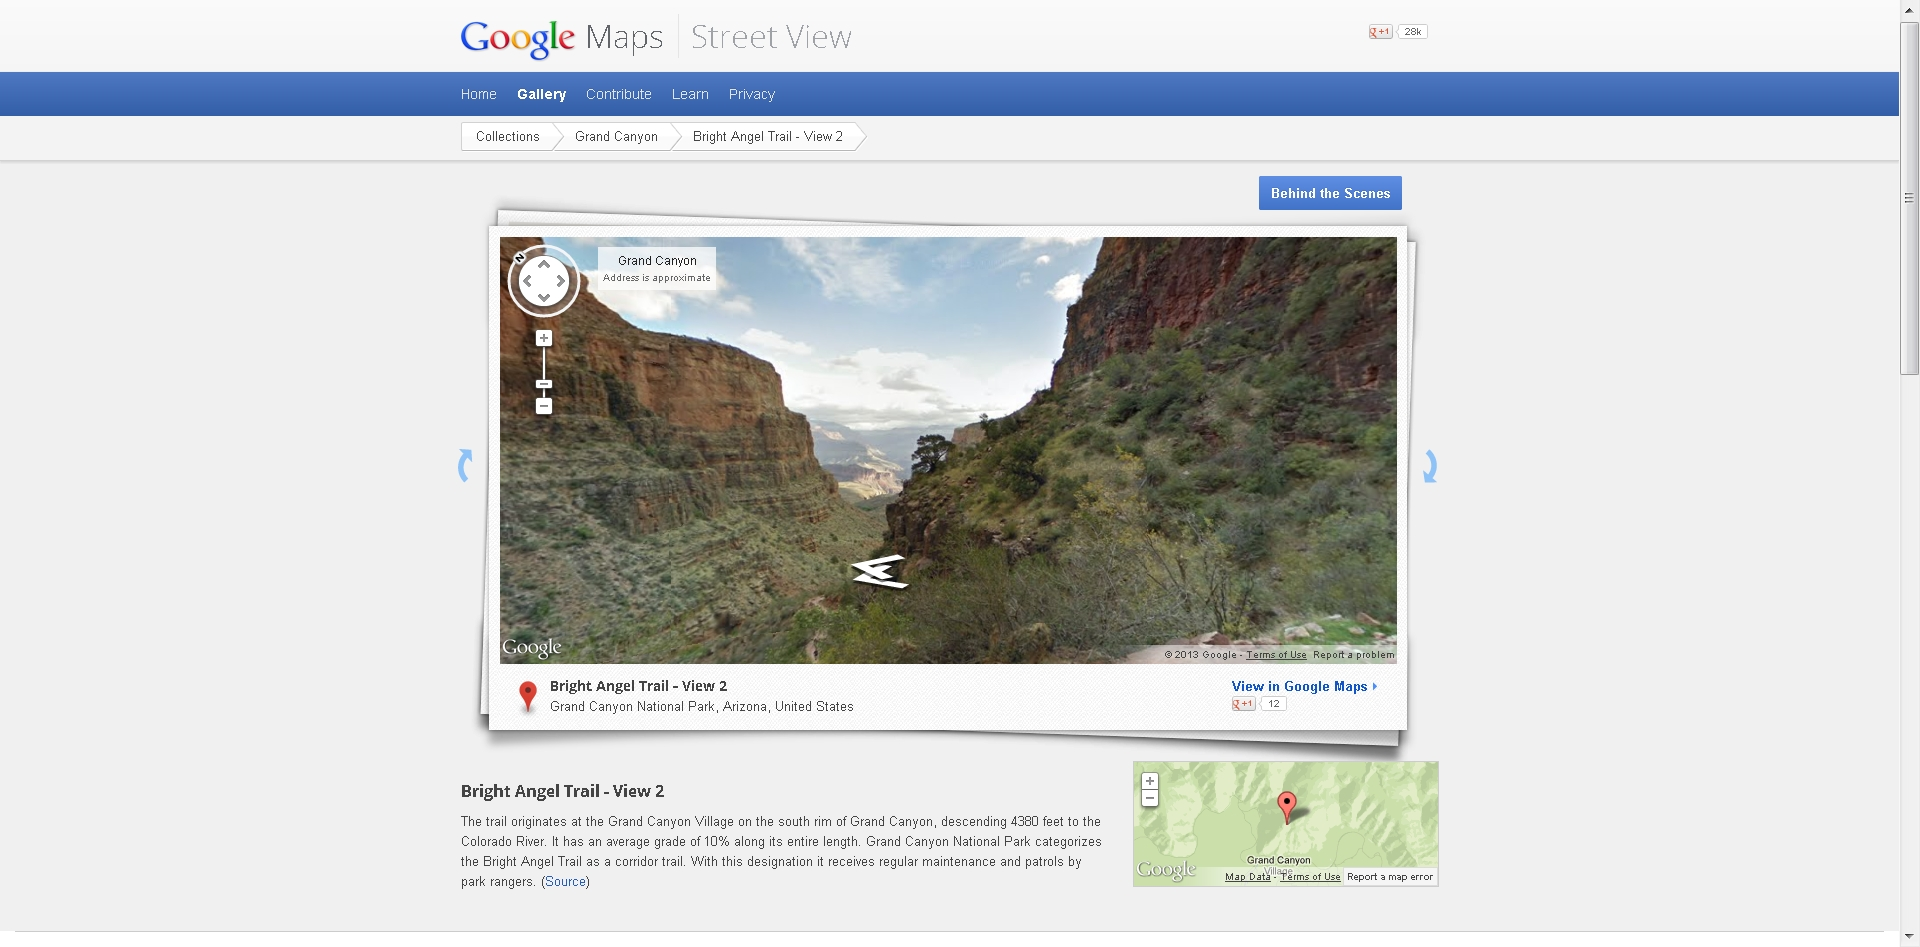 Free For All Grand Canyon Street View Apollo Mapping